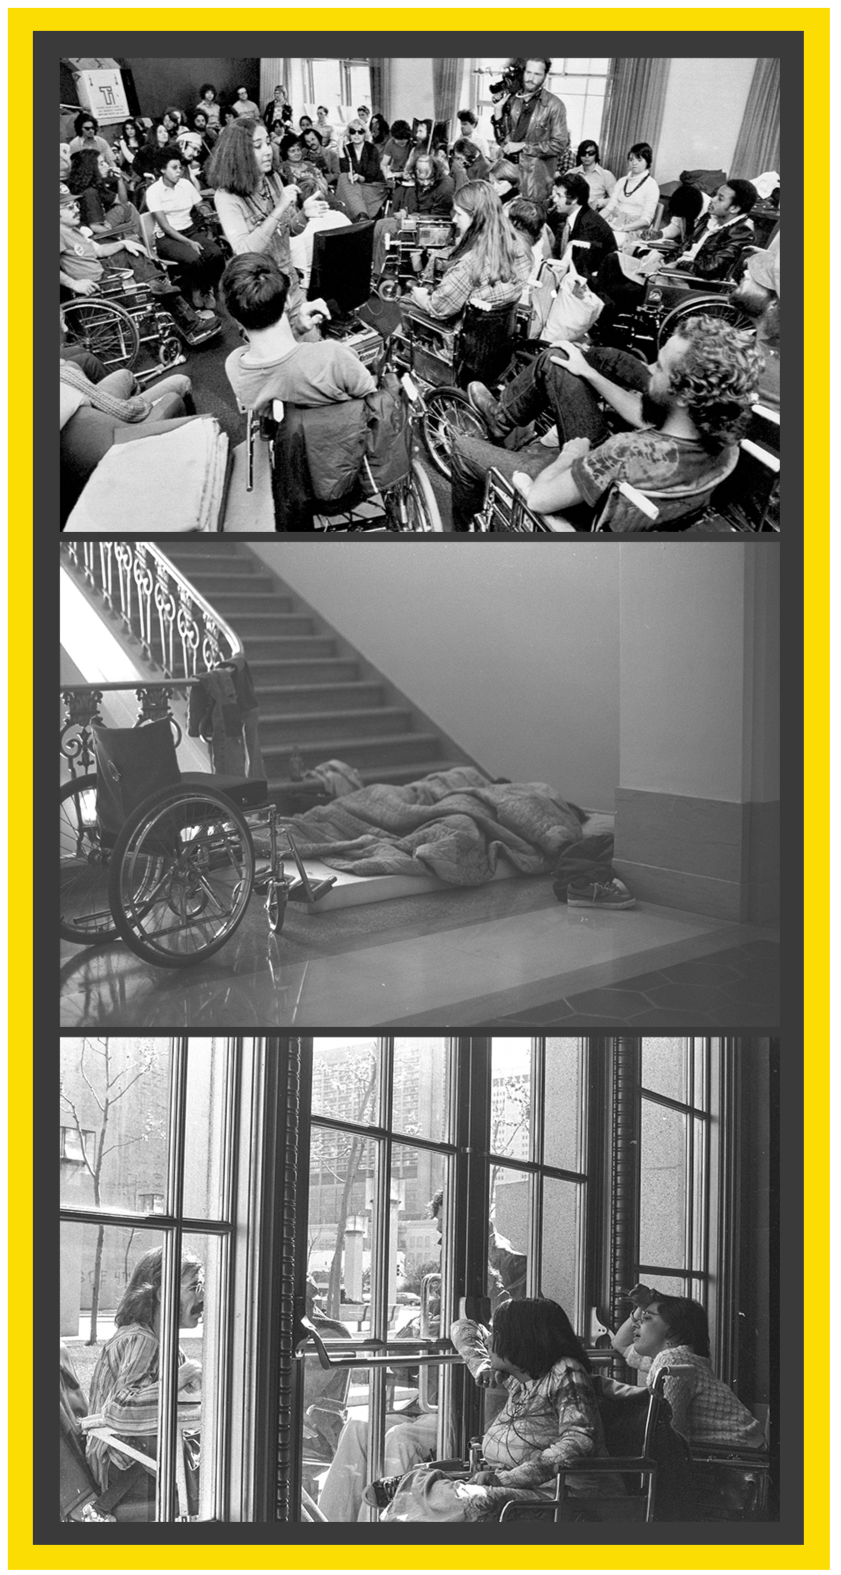 3 black and white photos. Photo 1: A large crowd of disabled people in a federal building. Many of them are in wheelchairs and there is a cameraman in the middle of them. Photo 2: A disabled person sleeping on steps inside a federal building. Their wheelchair is beside them and they have a blanket. Photo 3: Multiple disabled people looking out the window of a federal building at a crowd on the other side of the glass.